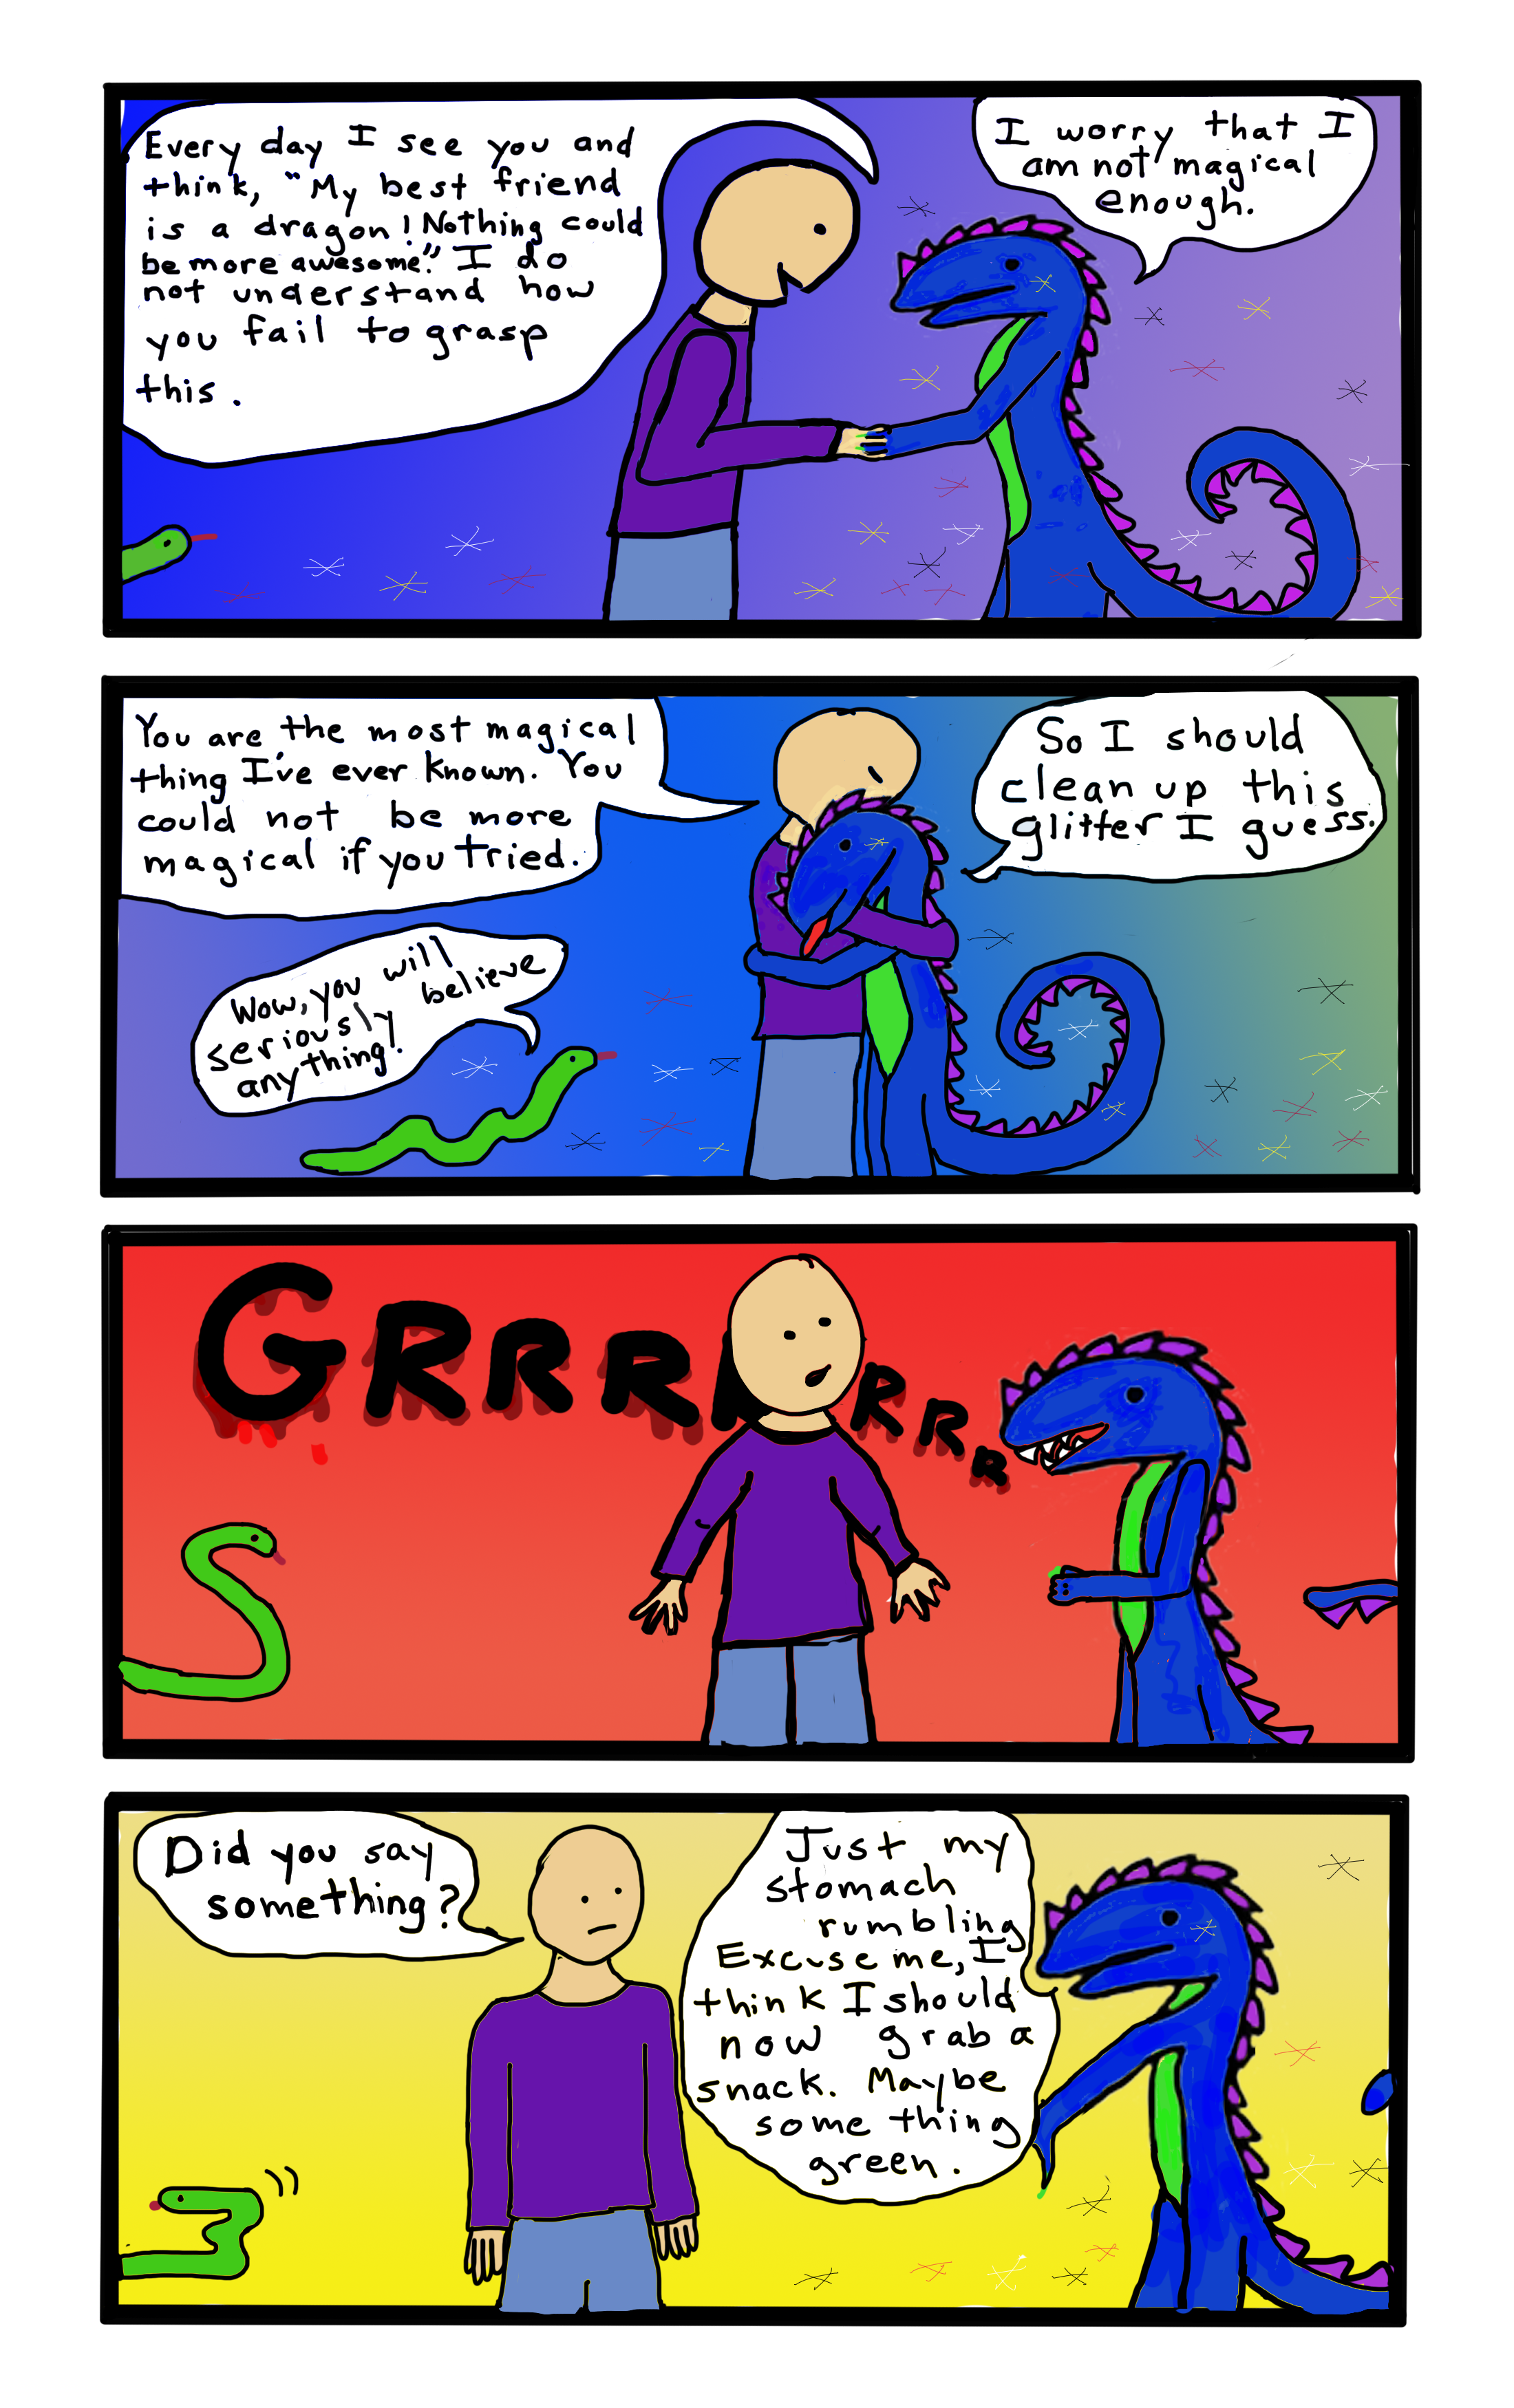 Is this a webcomic? Everything is confusing when your brain forgets to power down once in a while.